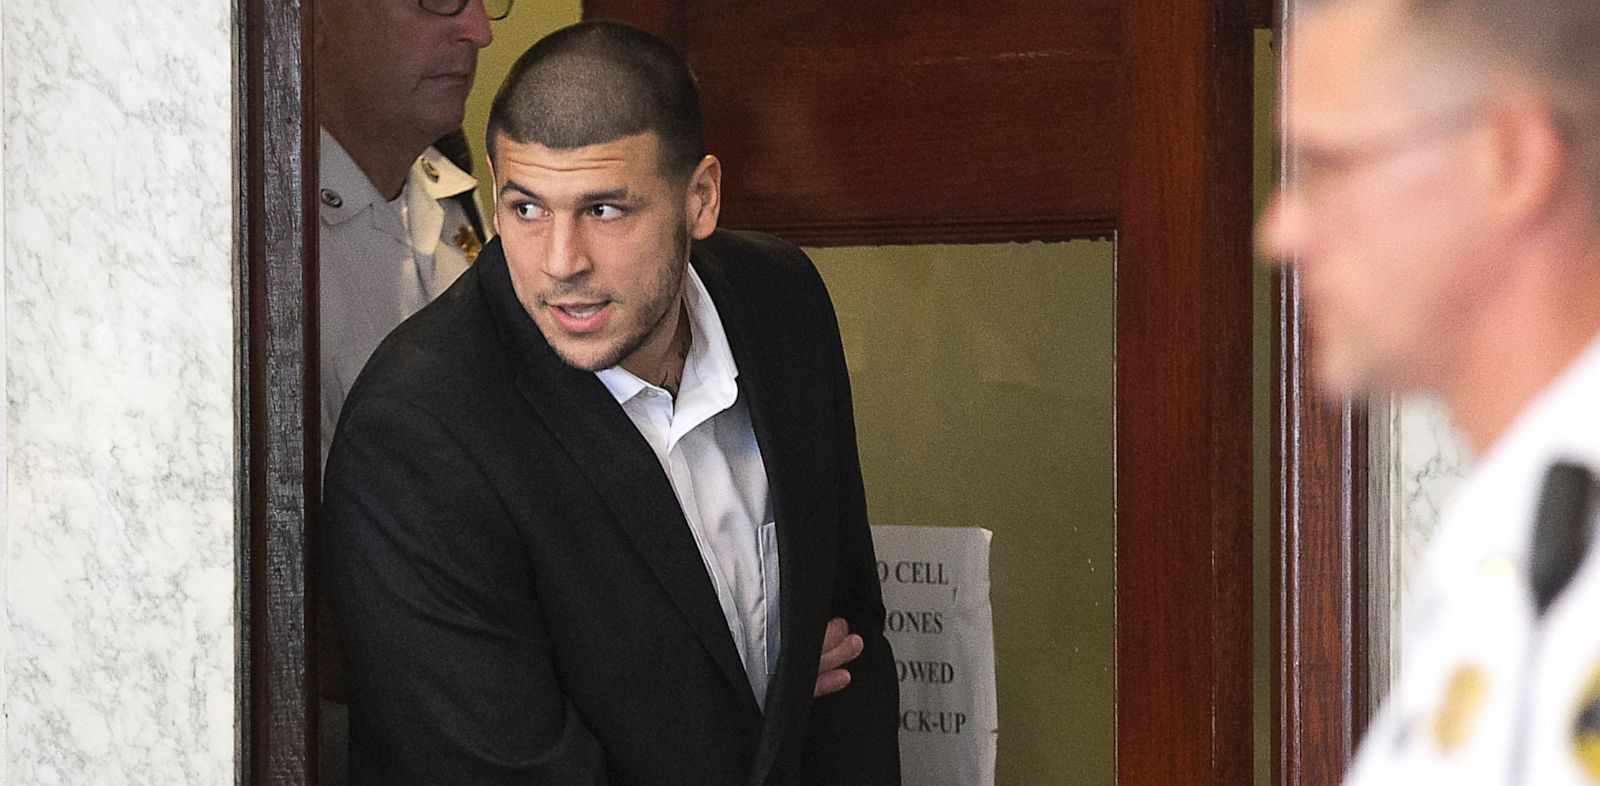 PHOTO: Aaron Hernandez enters courtroom